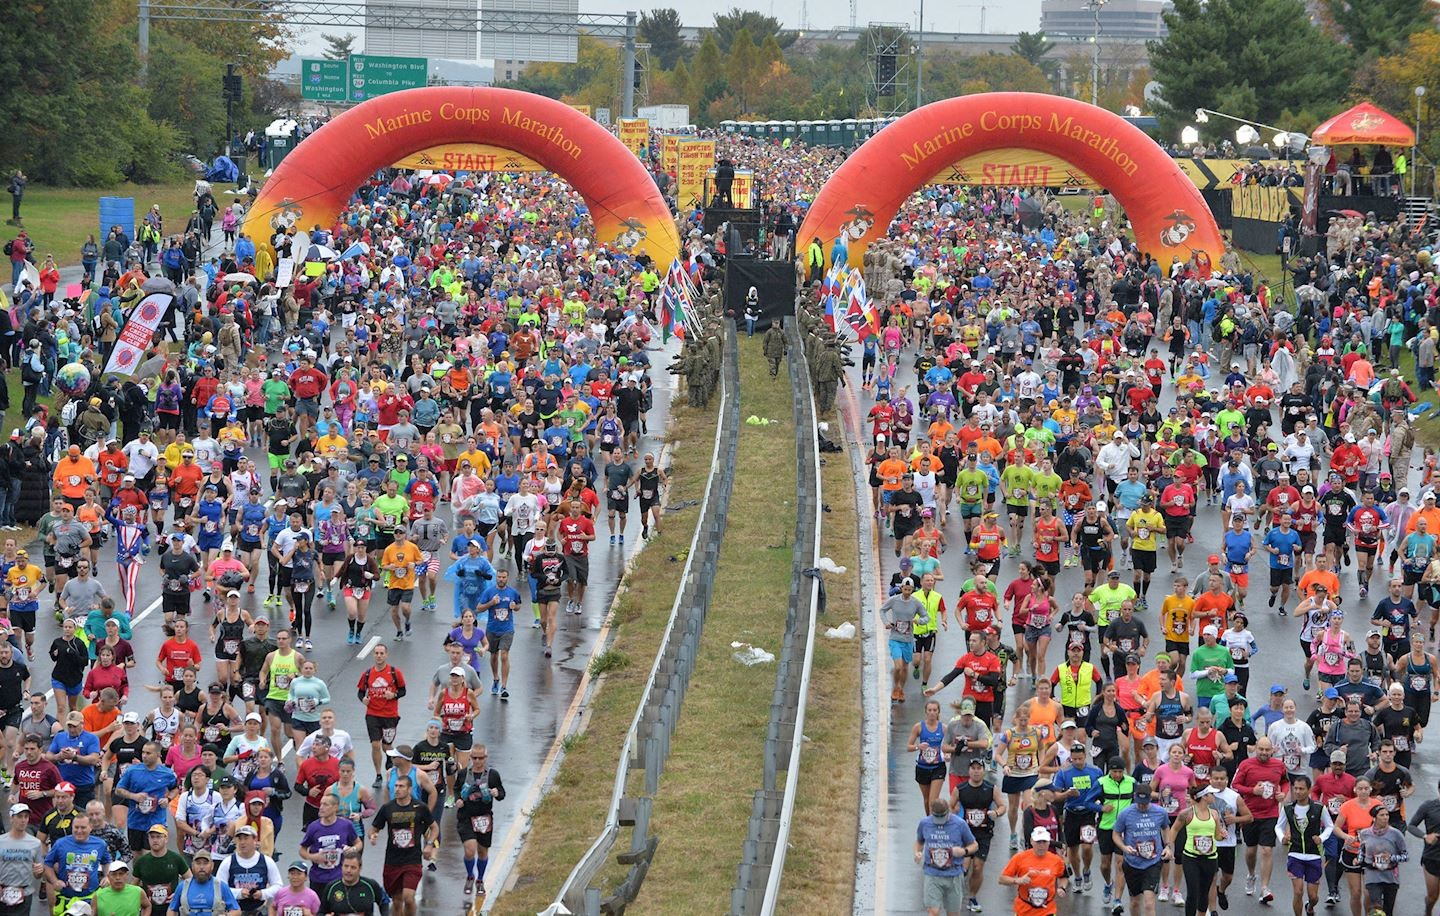 Cigna returns as Presenting Sponsor of the Marine Corps Marathon